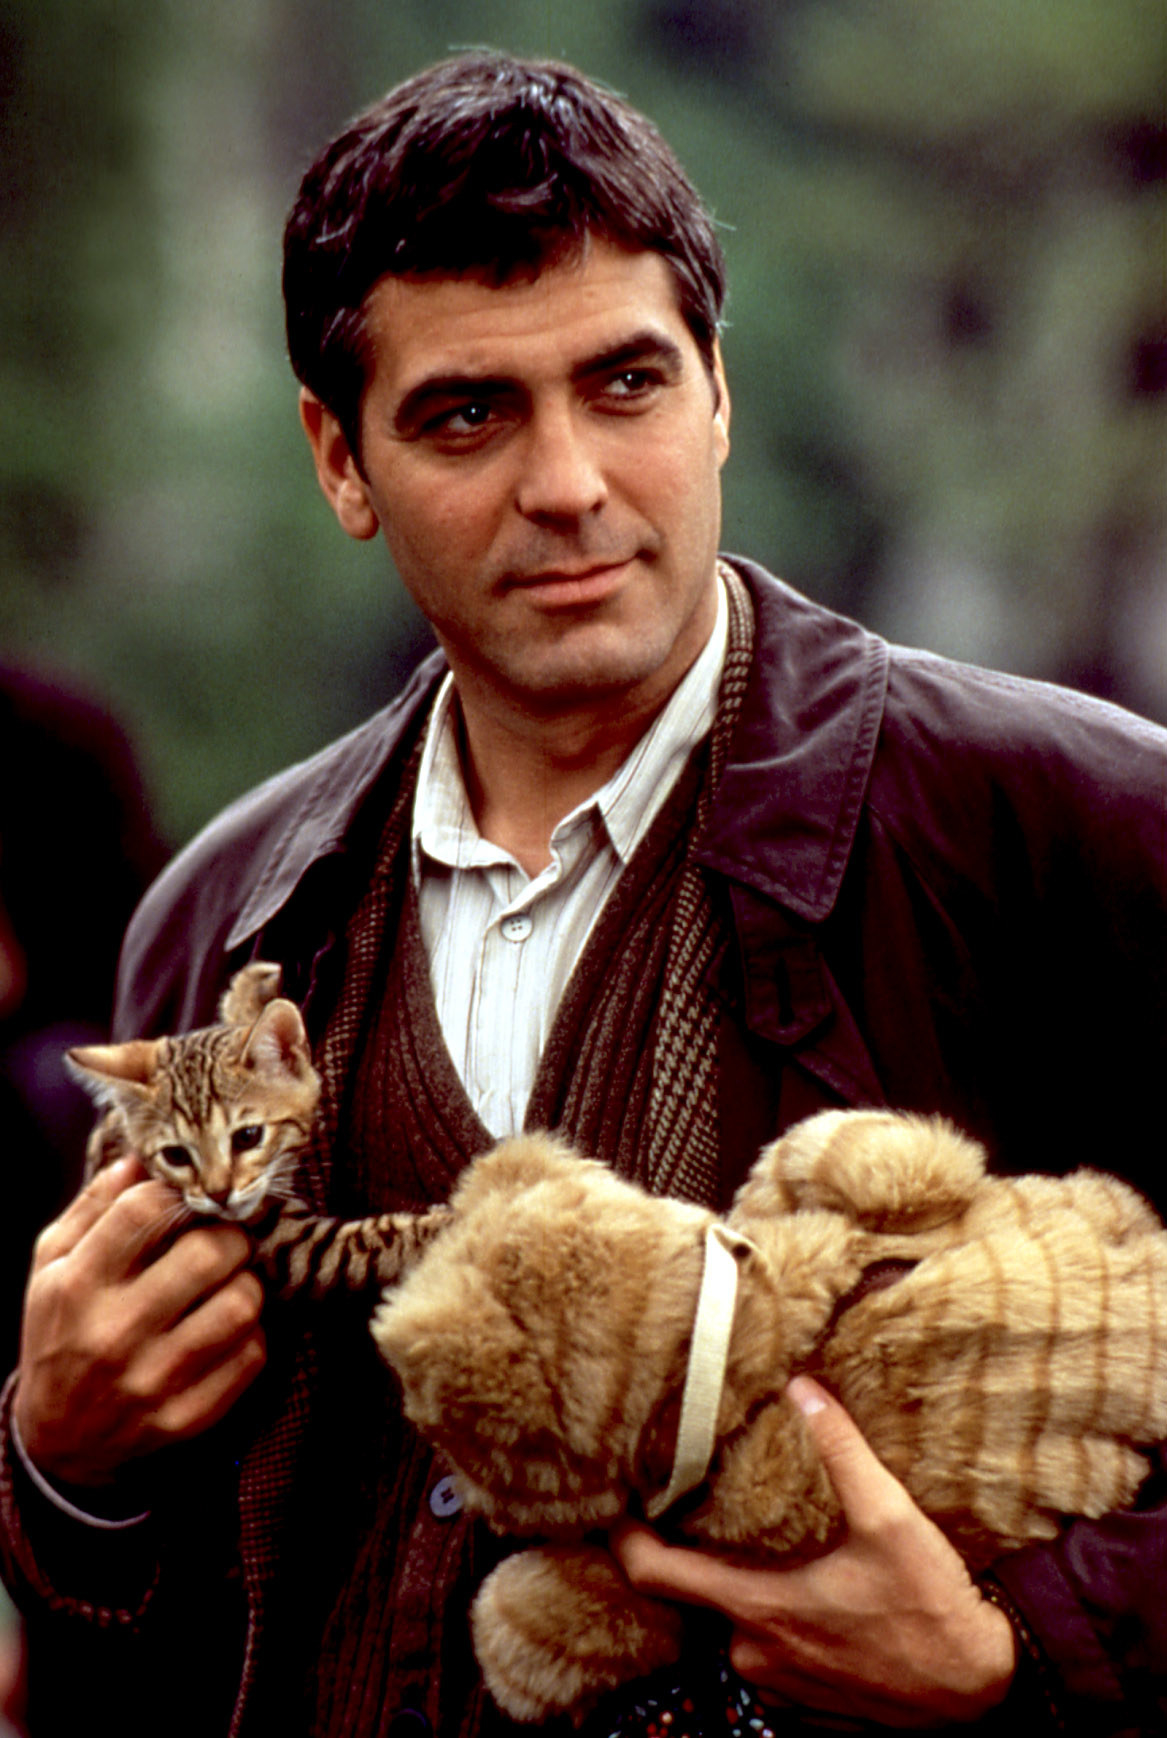 George Clooney holding a cat and a stuffed animal in One Fine Day